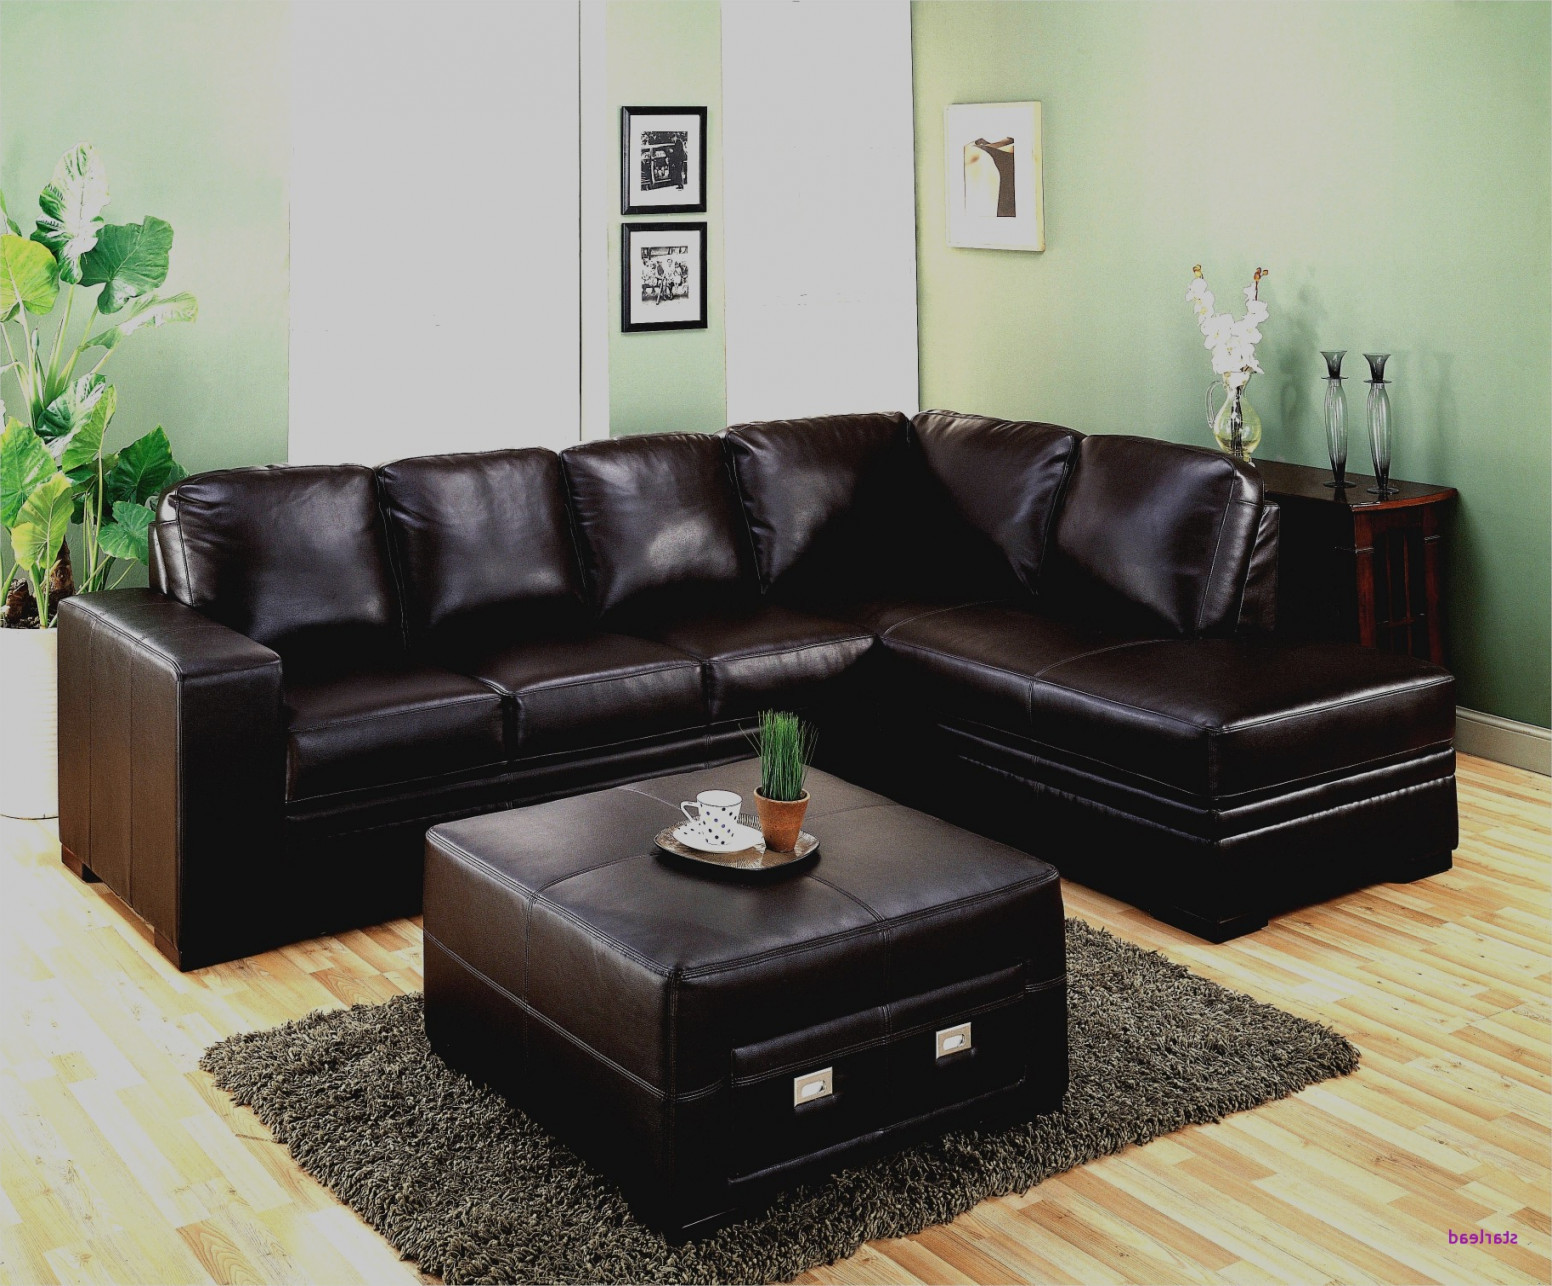 couches for dark hardwood floors of awesome 30 sofa sets for living room fresh home design ideas pertaining to modern leather sofa set awesome black leather sofa set design wicker outdoor so